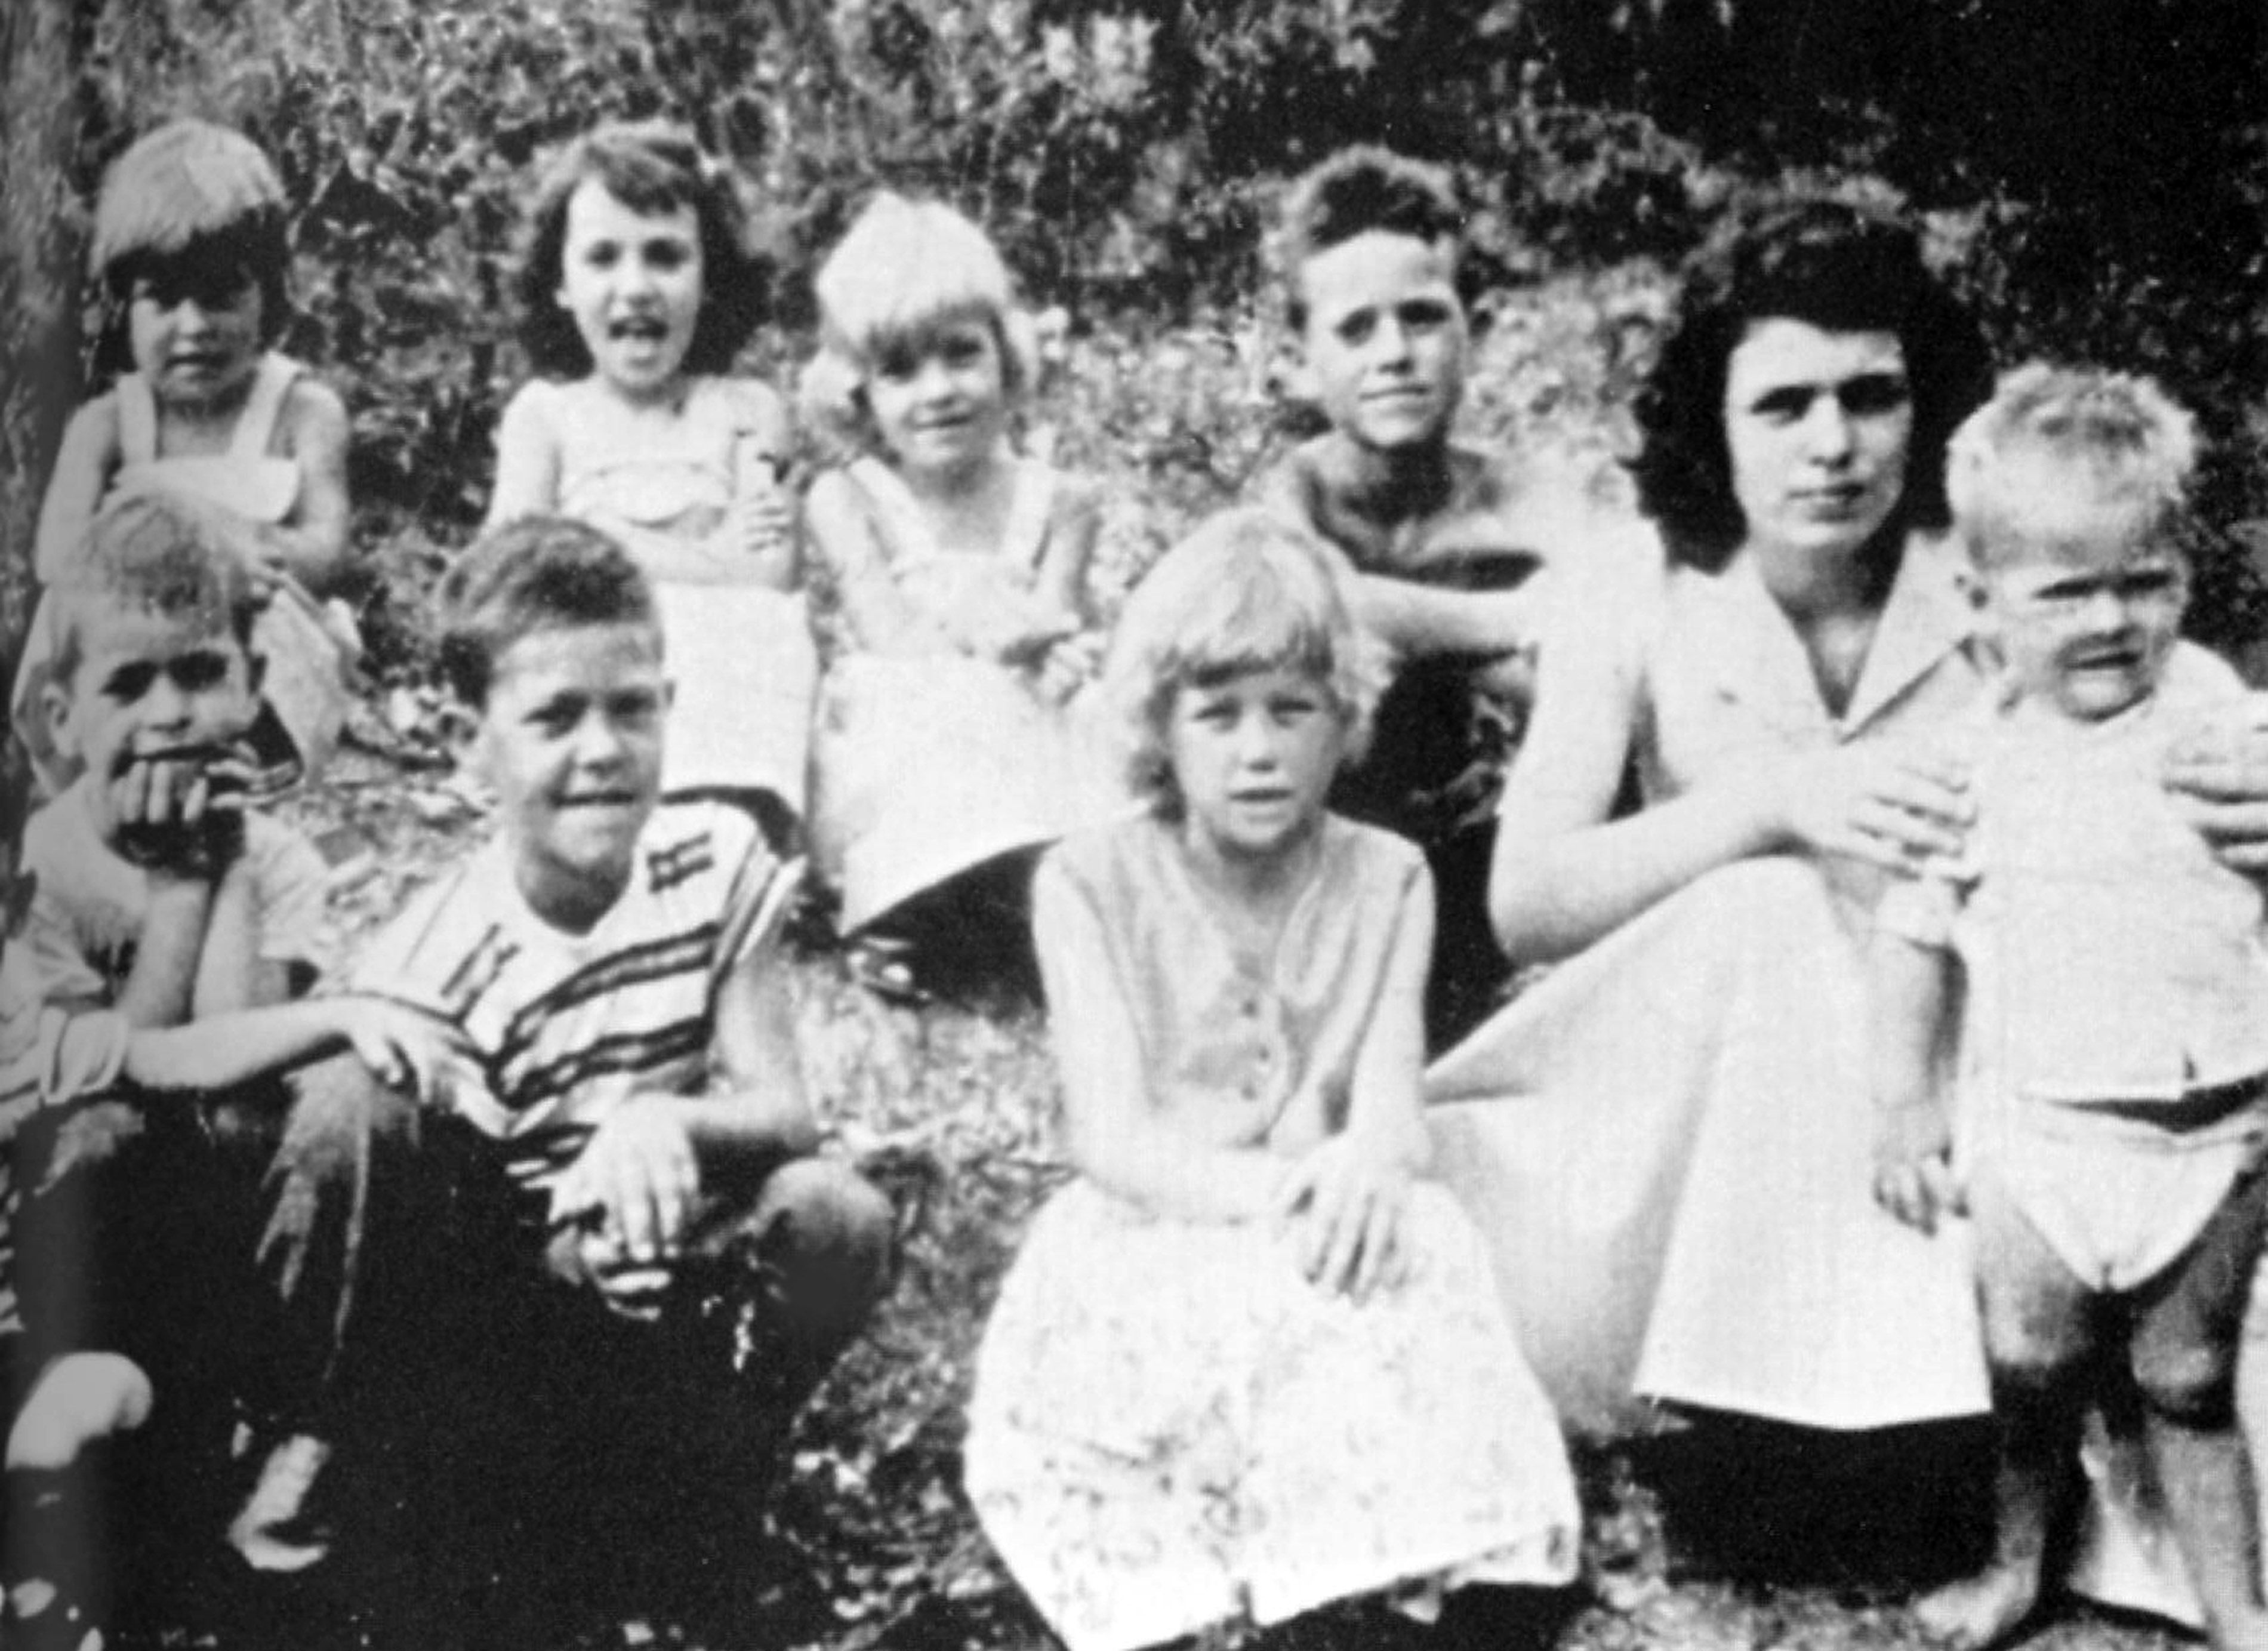 Dolly Parton's Siblings - How Many Siblings Does Dolly Parton Have